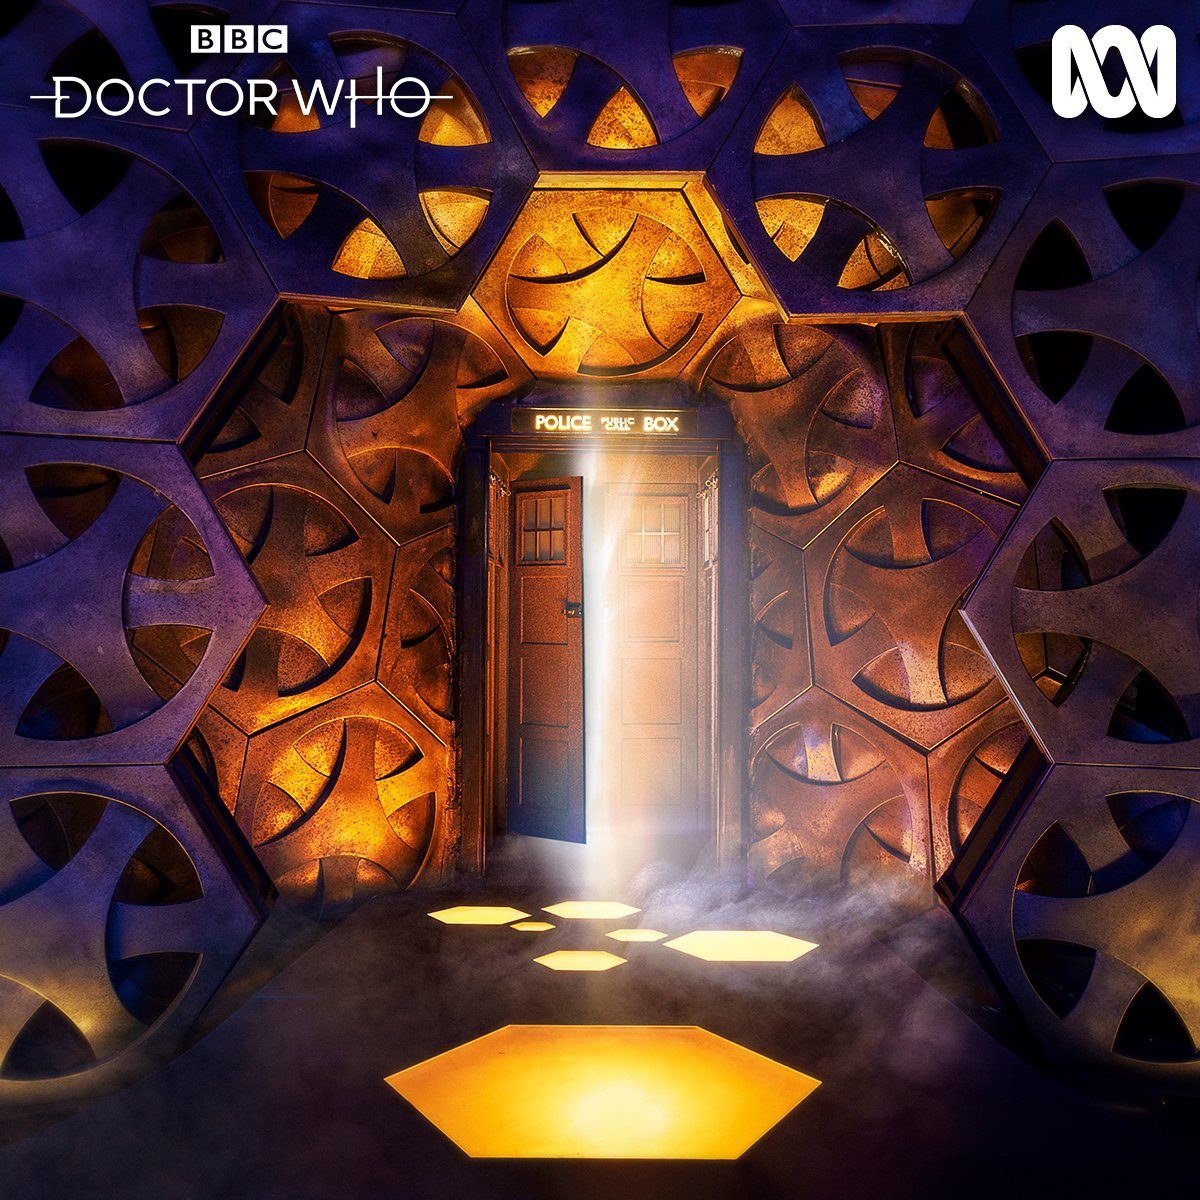 What do you think about the new TARDIS? Watch new #DoctorWho on Mondays 6pm or see it first on iview. Switch over to @ABC2 at 7.30pm for .#WhoviansAU